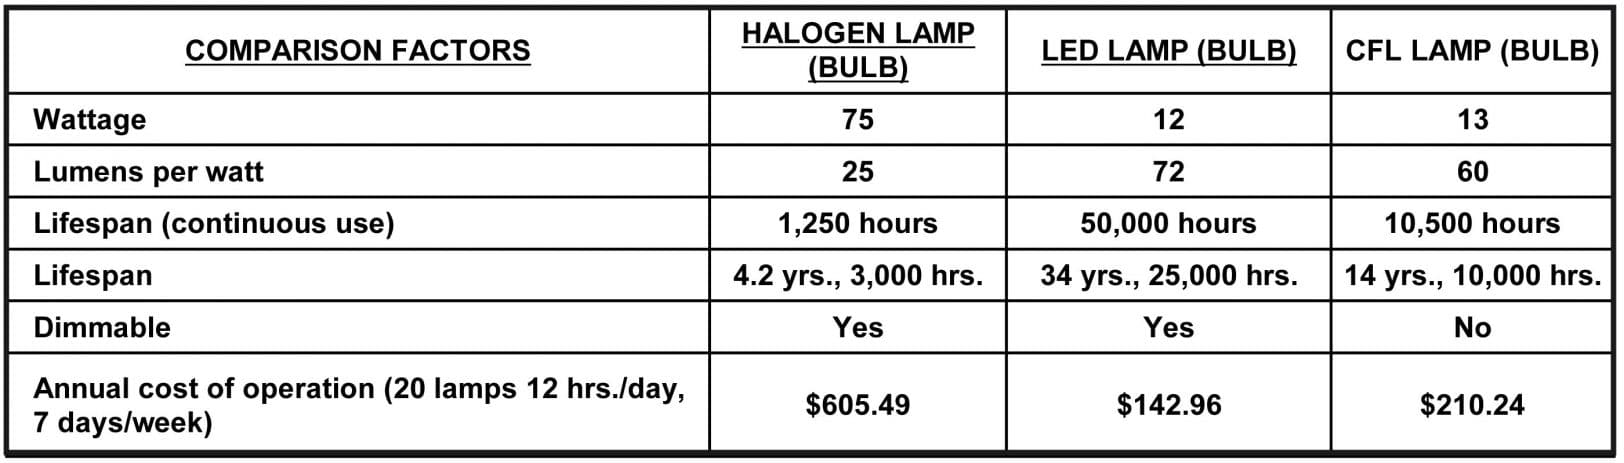 Comparison chart Halogen - LED - CFL